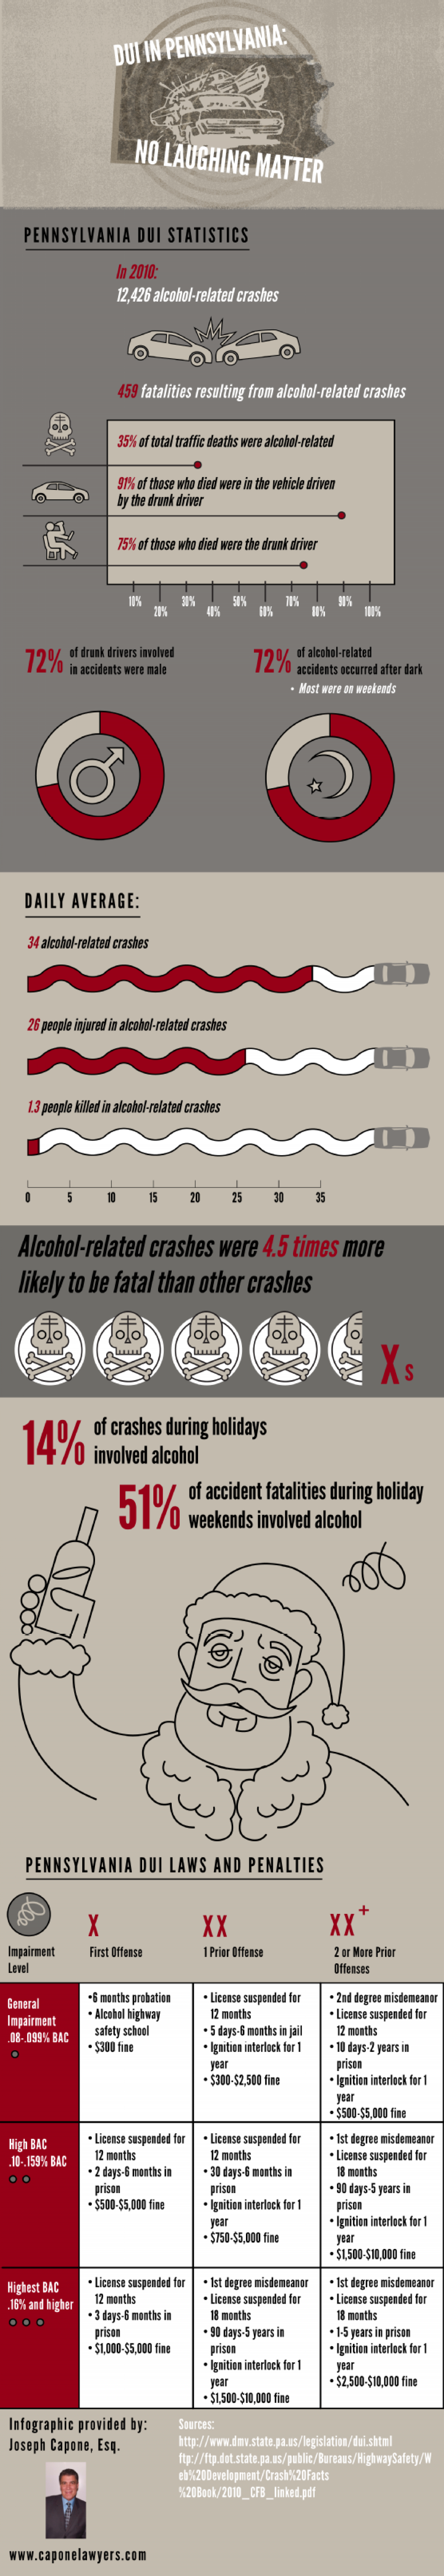 DUI in Pennsylvania: No Laughing Matter Infographic